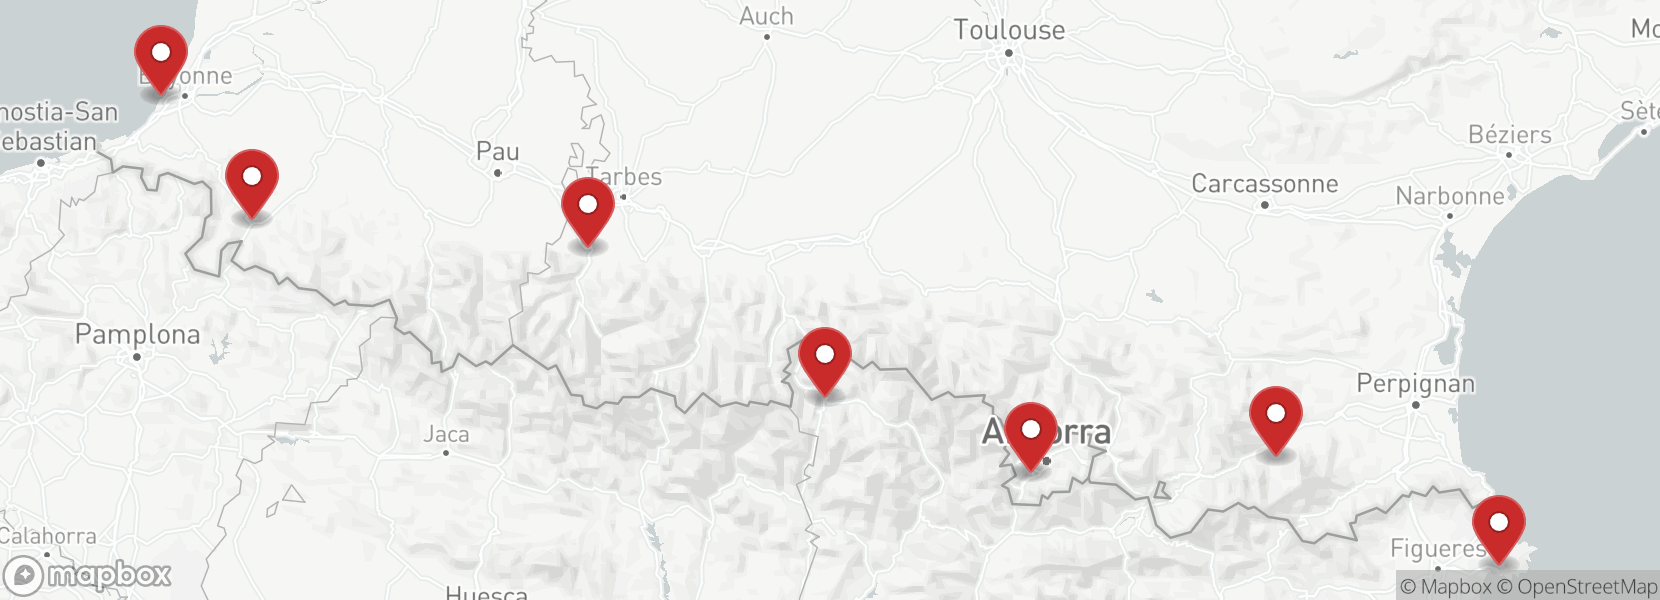 Itinerary Motorcycle tour France Pyrénées